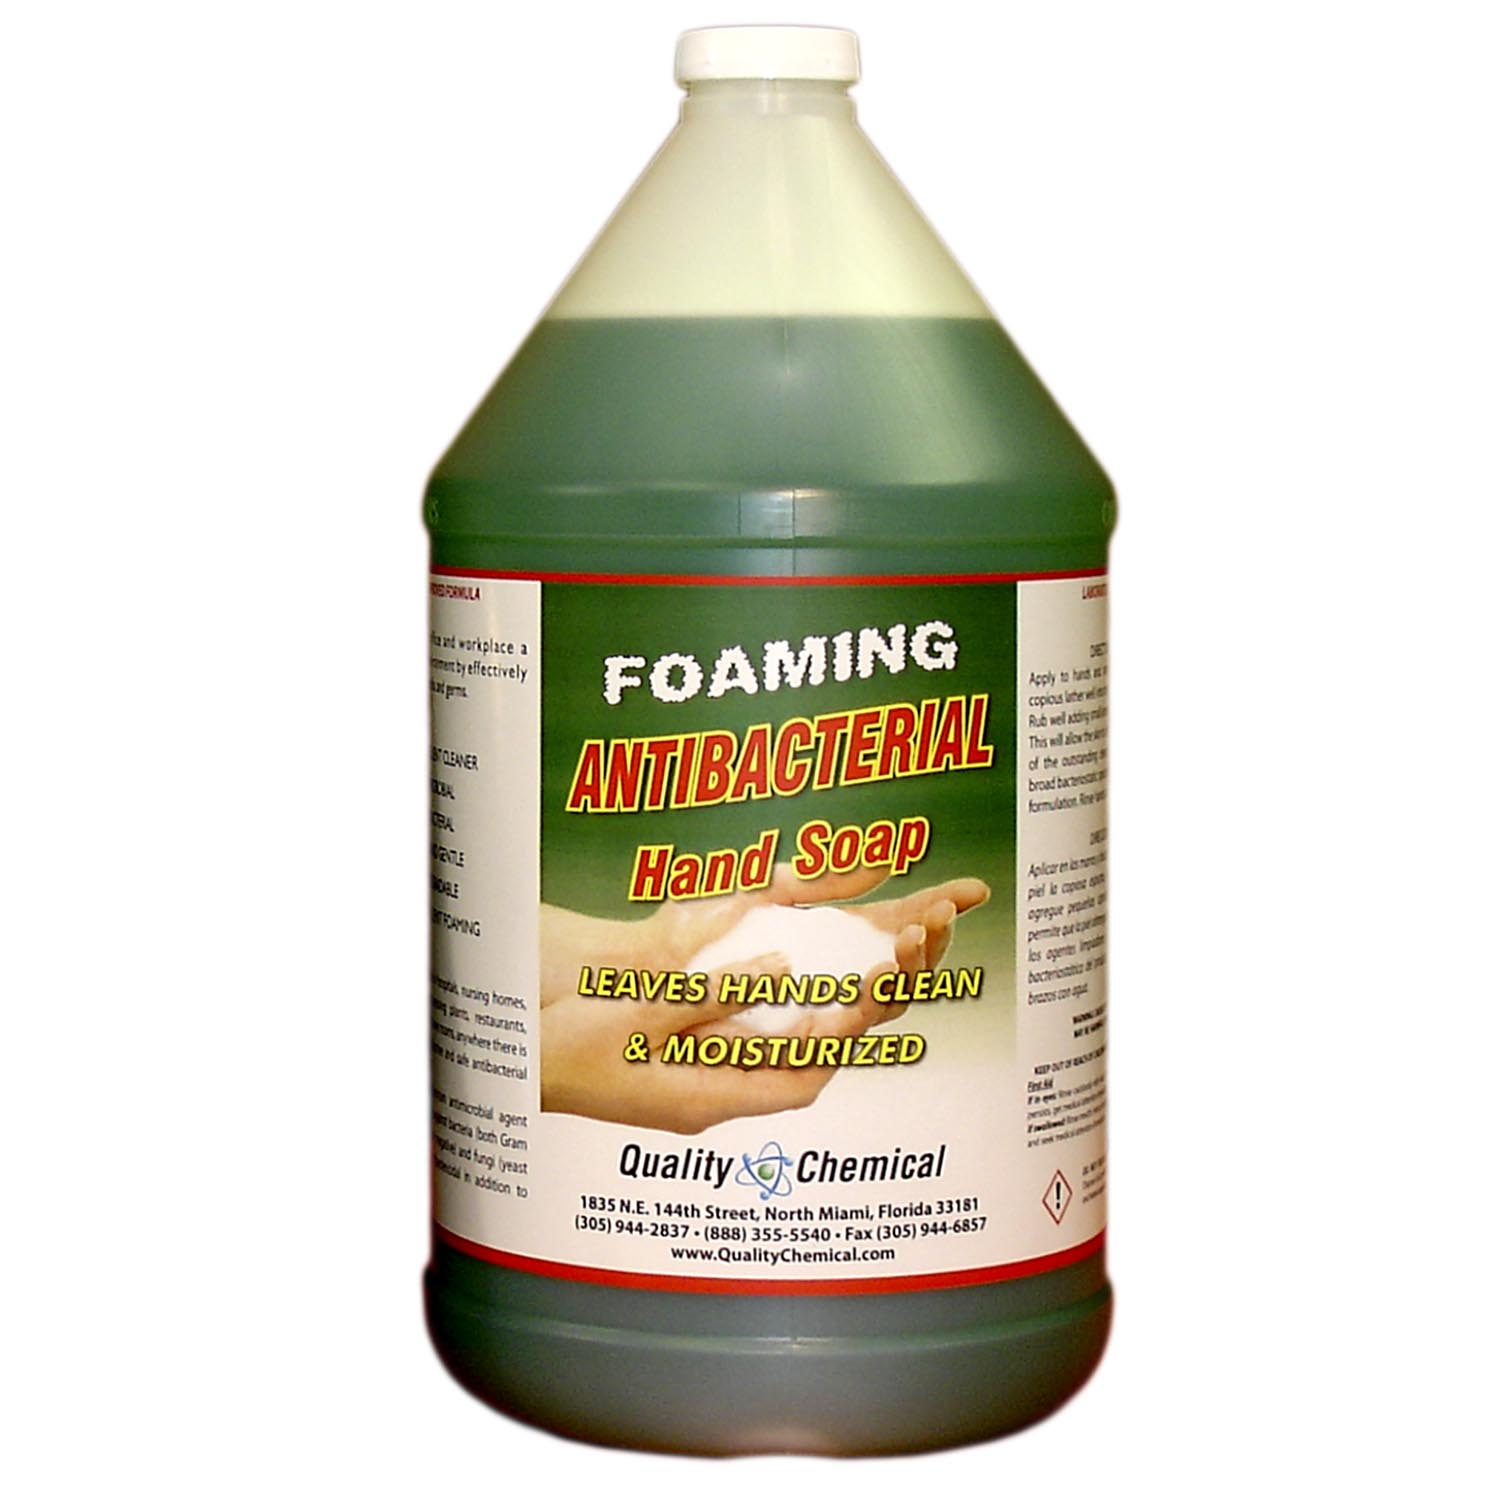 Antibacterial Foaming Soap